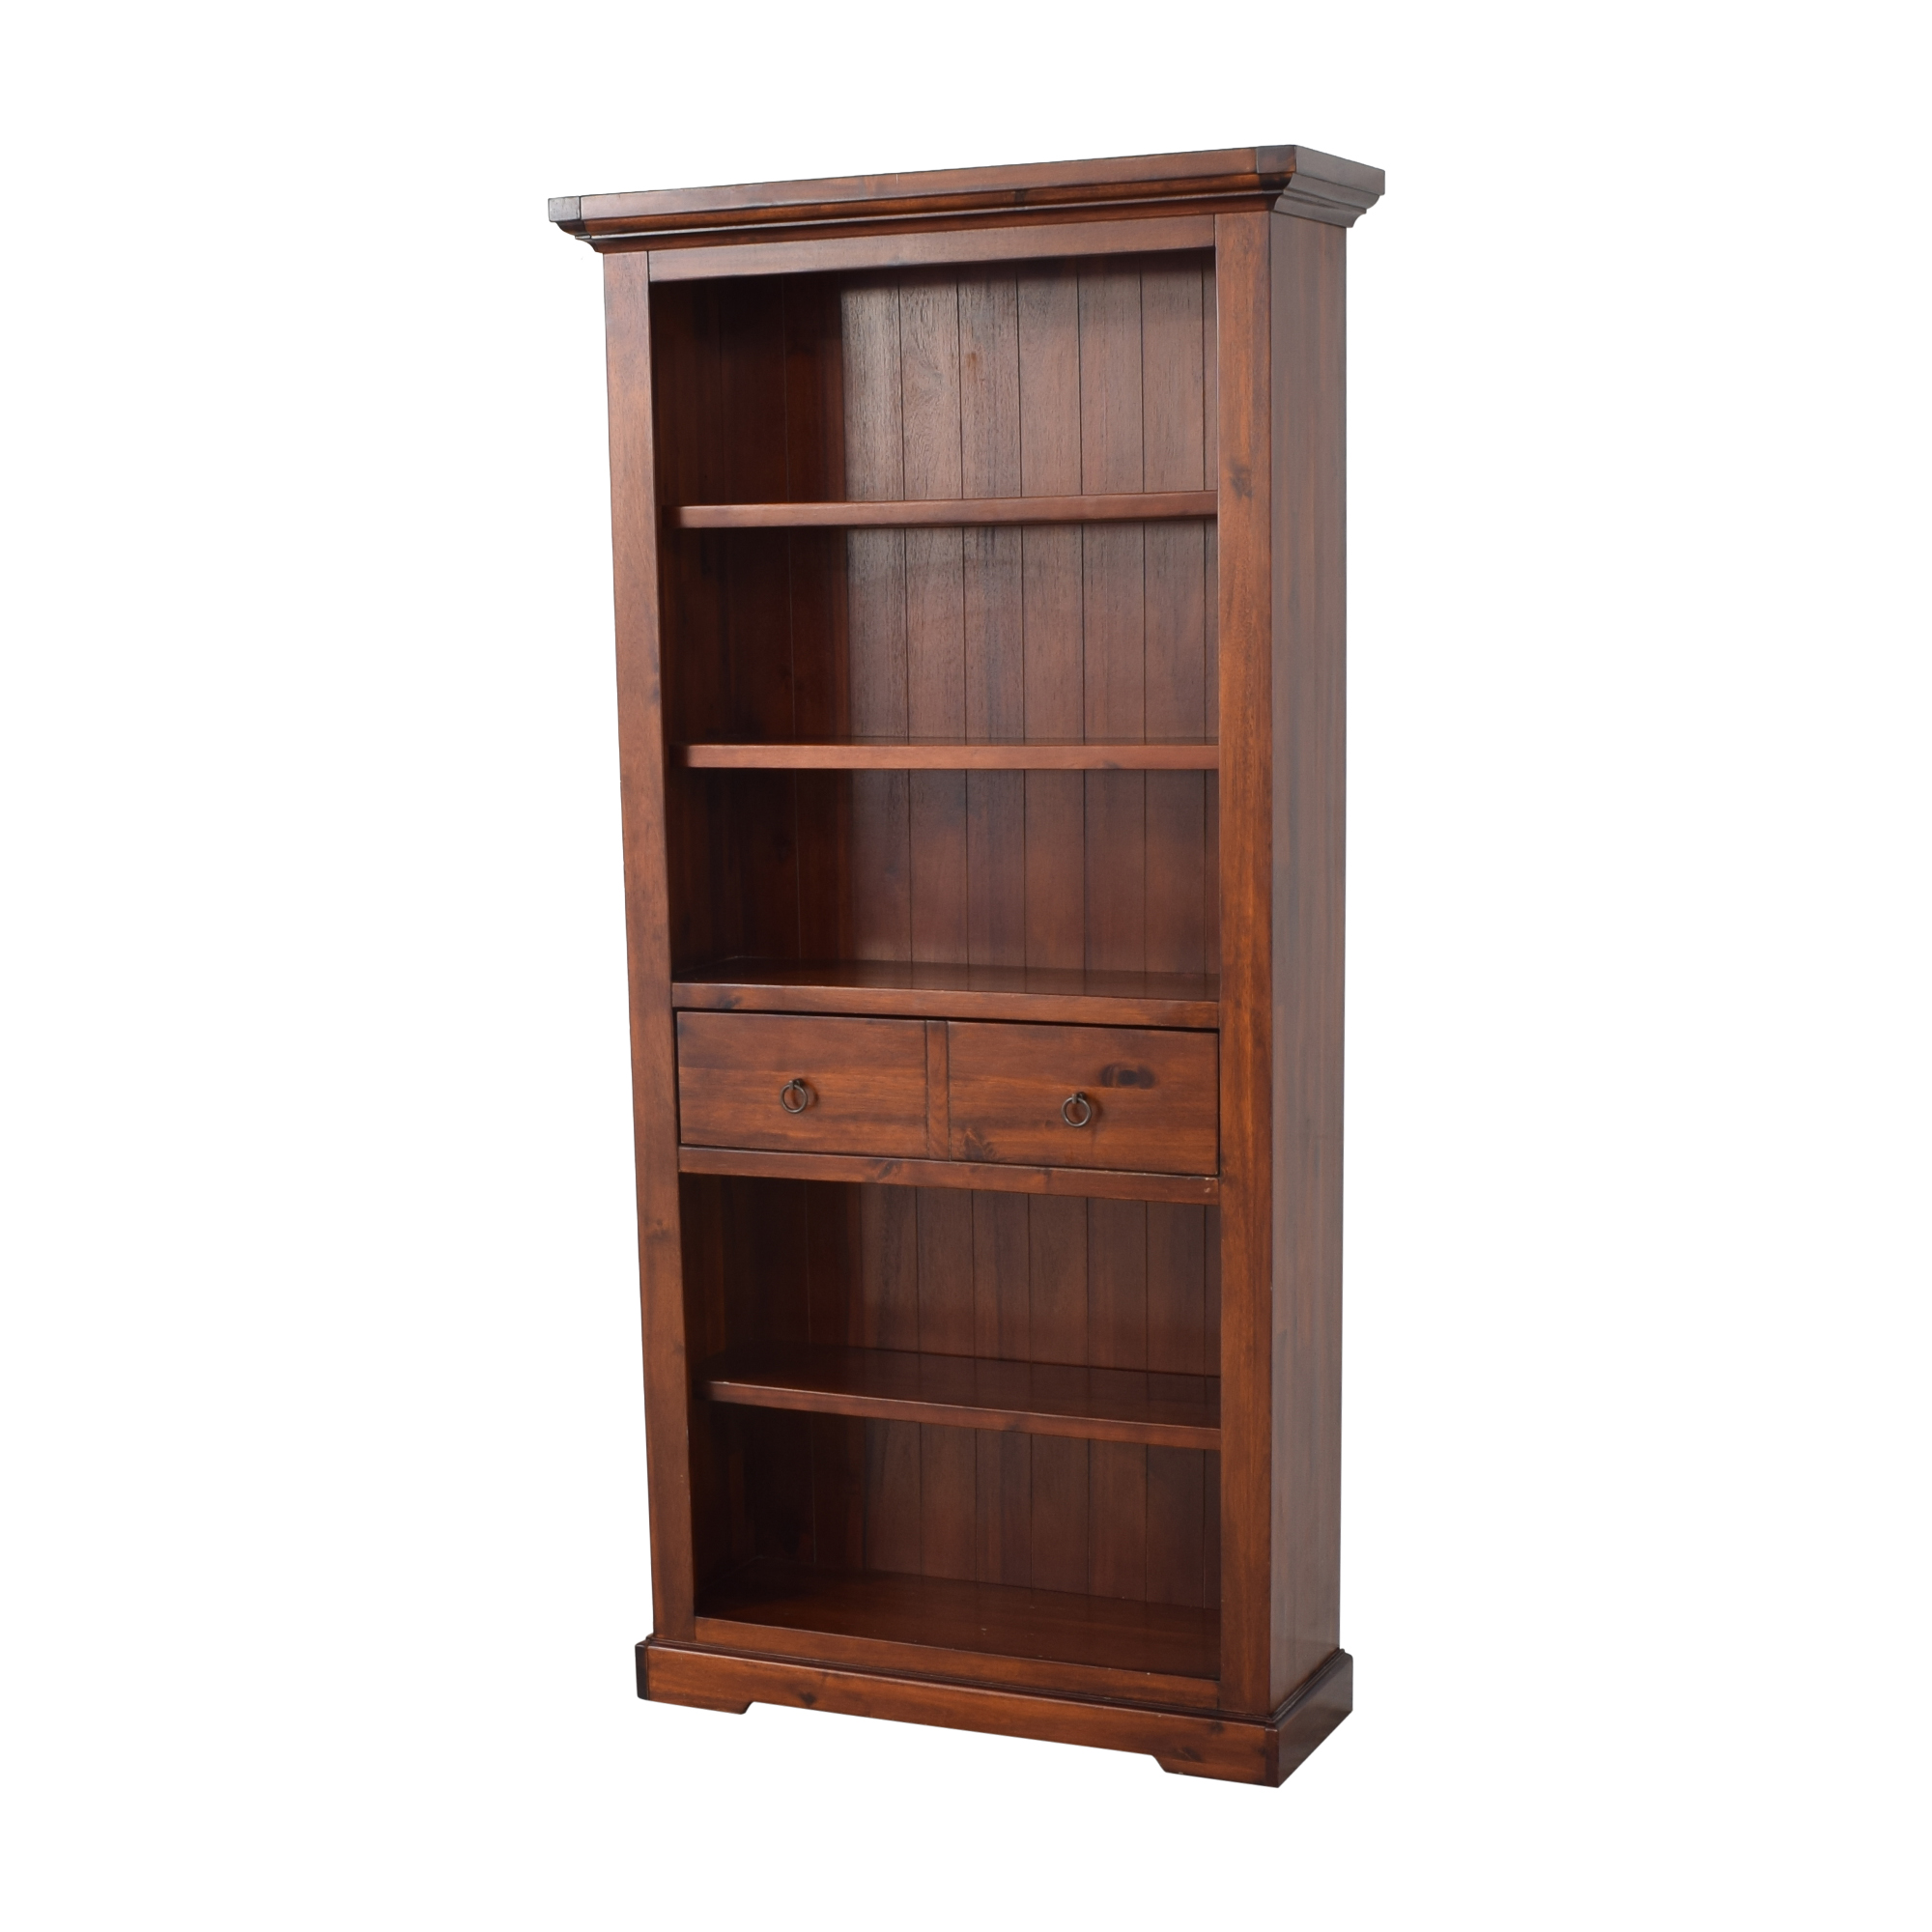 shop  Tall Bookshelf with Drawer online